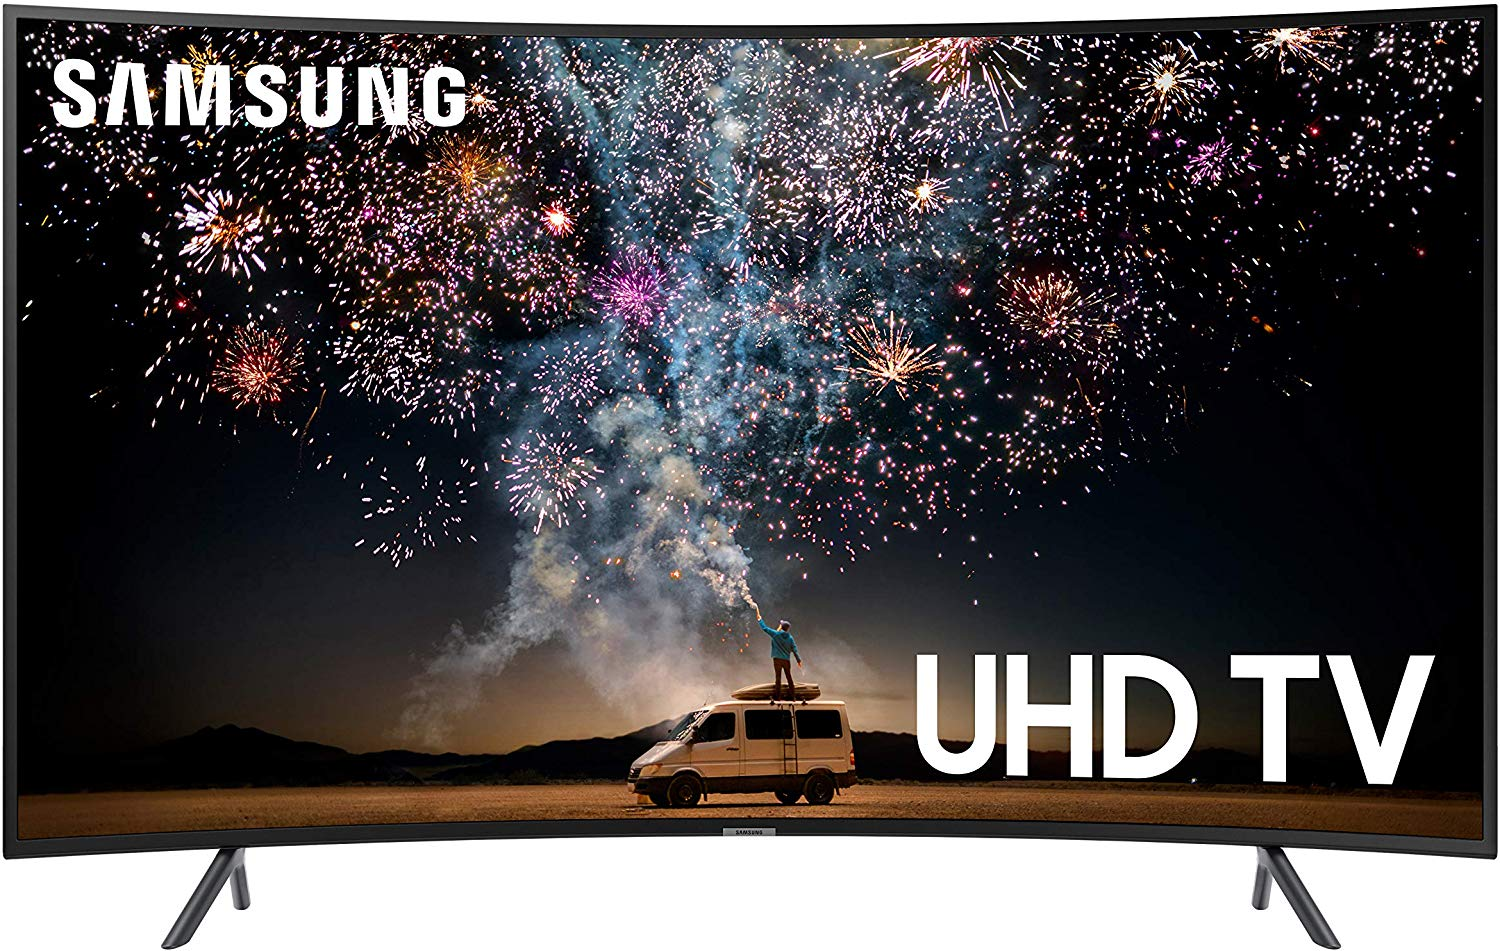 Samsung UN65RU7300FXZA Curved 65-Inch 4K UHD 7 Series Ultra HD Smart TV with HDR and Alexa Compatibility (2020 Model)